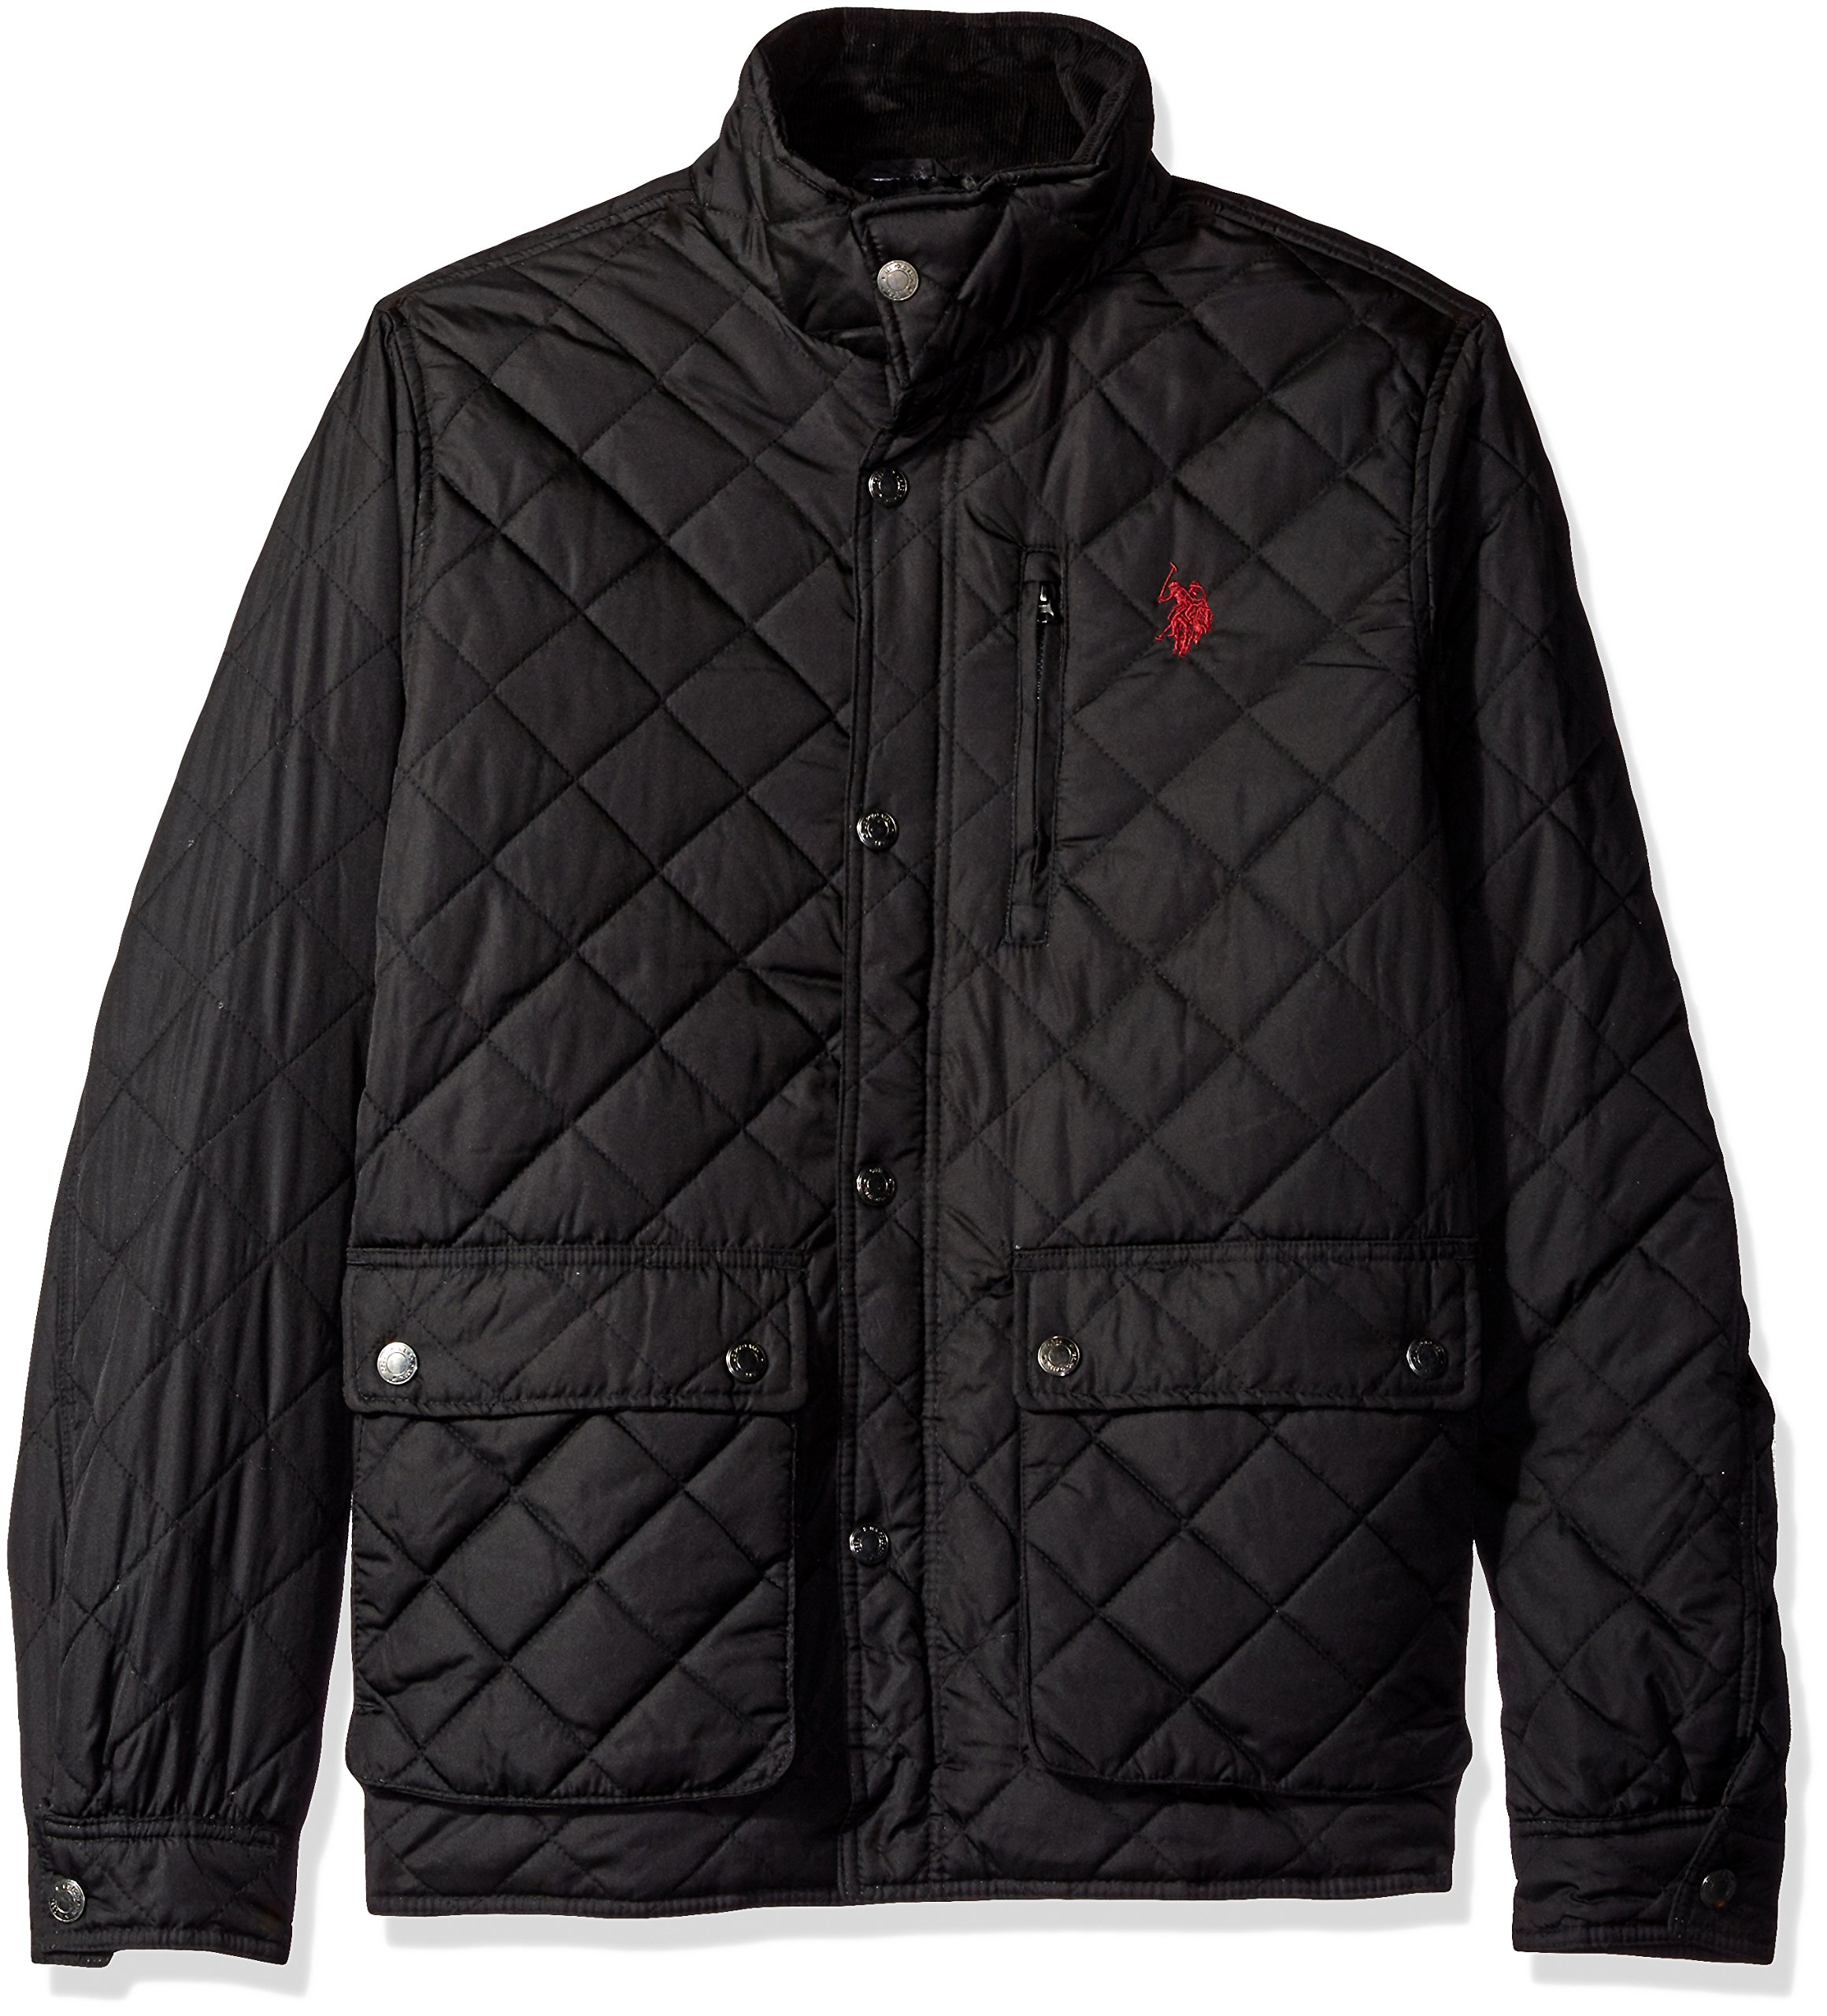 U.S. Polo Assn. Men's Diamond Quilted Jacket, Black, X-Large